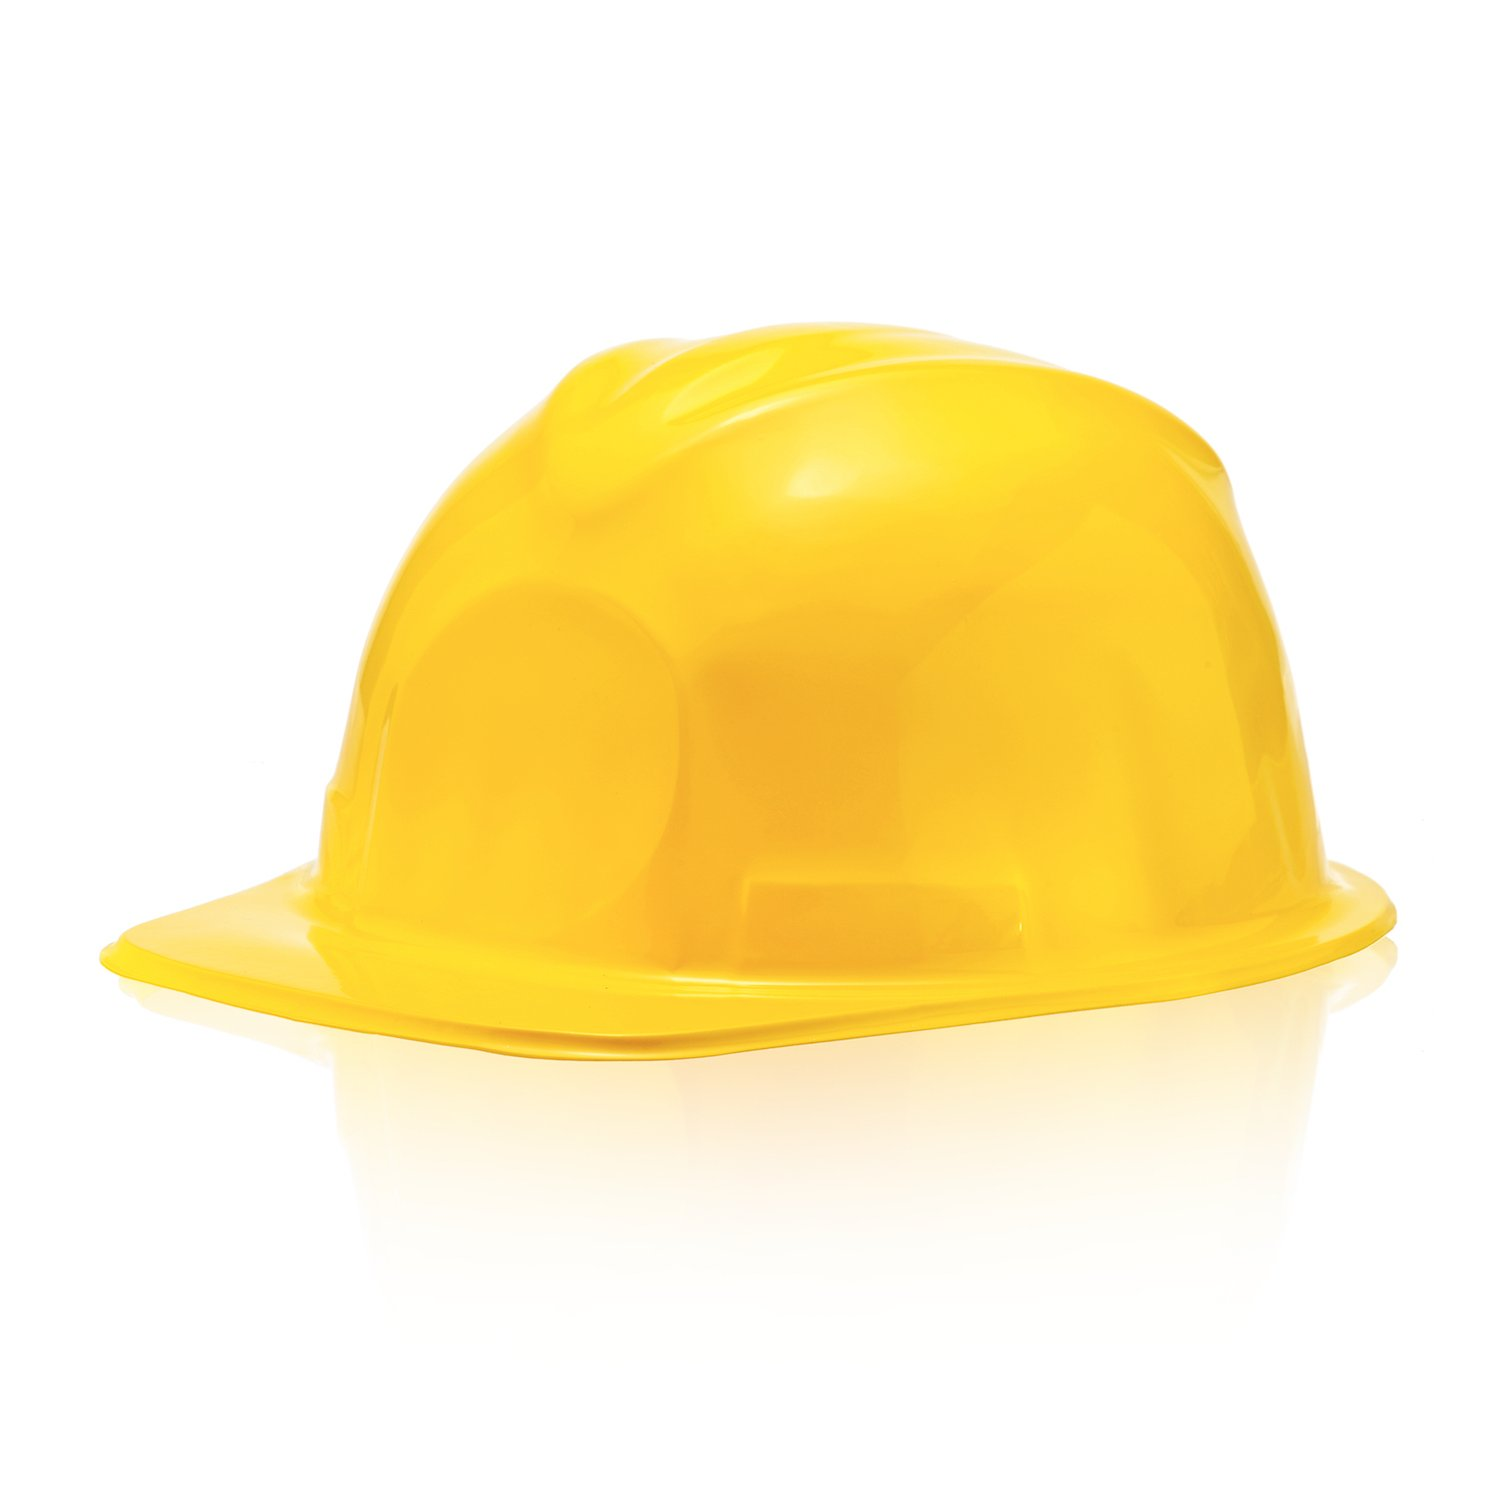 Bottles N Bags 24 Pack of Child Size Plastic Yellow Construction Hats for Young Builders by by Bottles N Bags (Image #2)